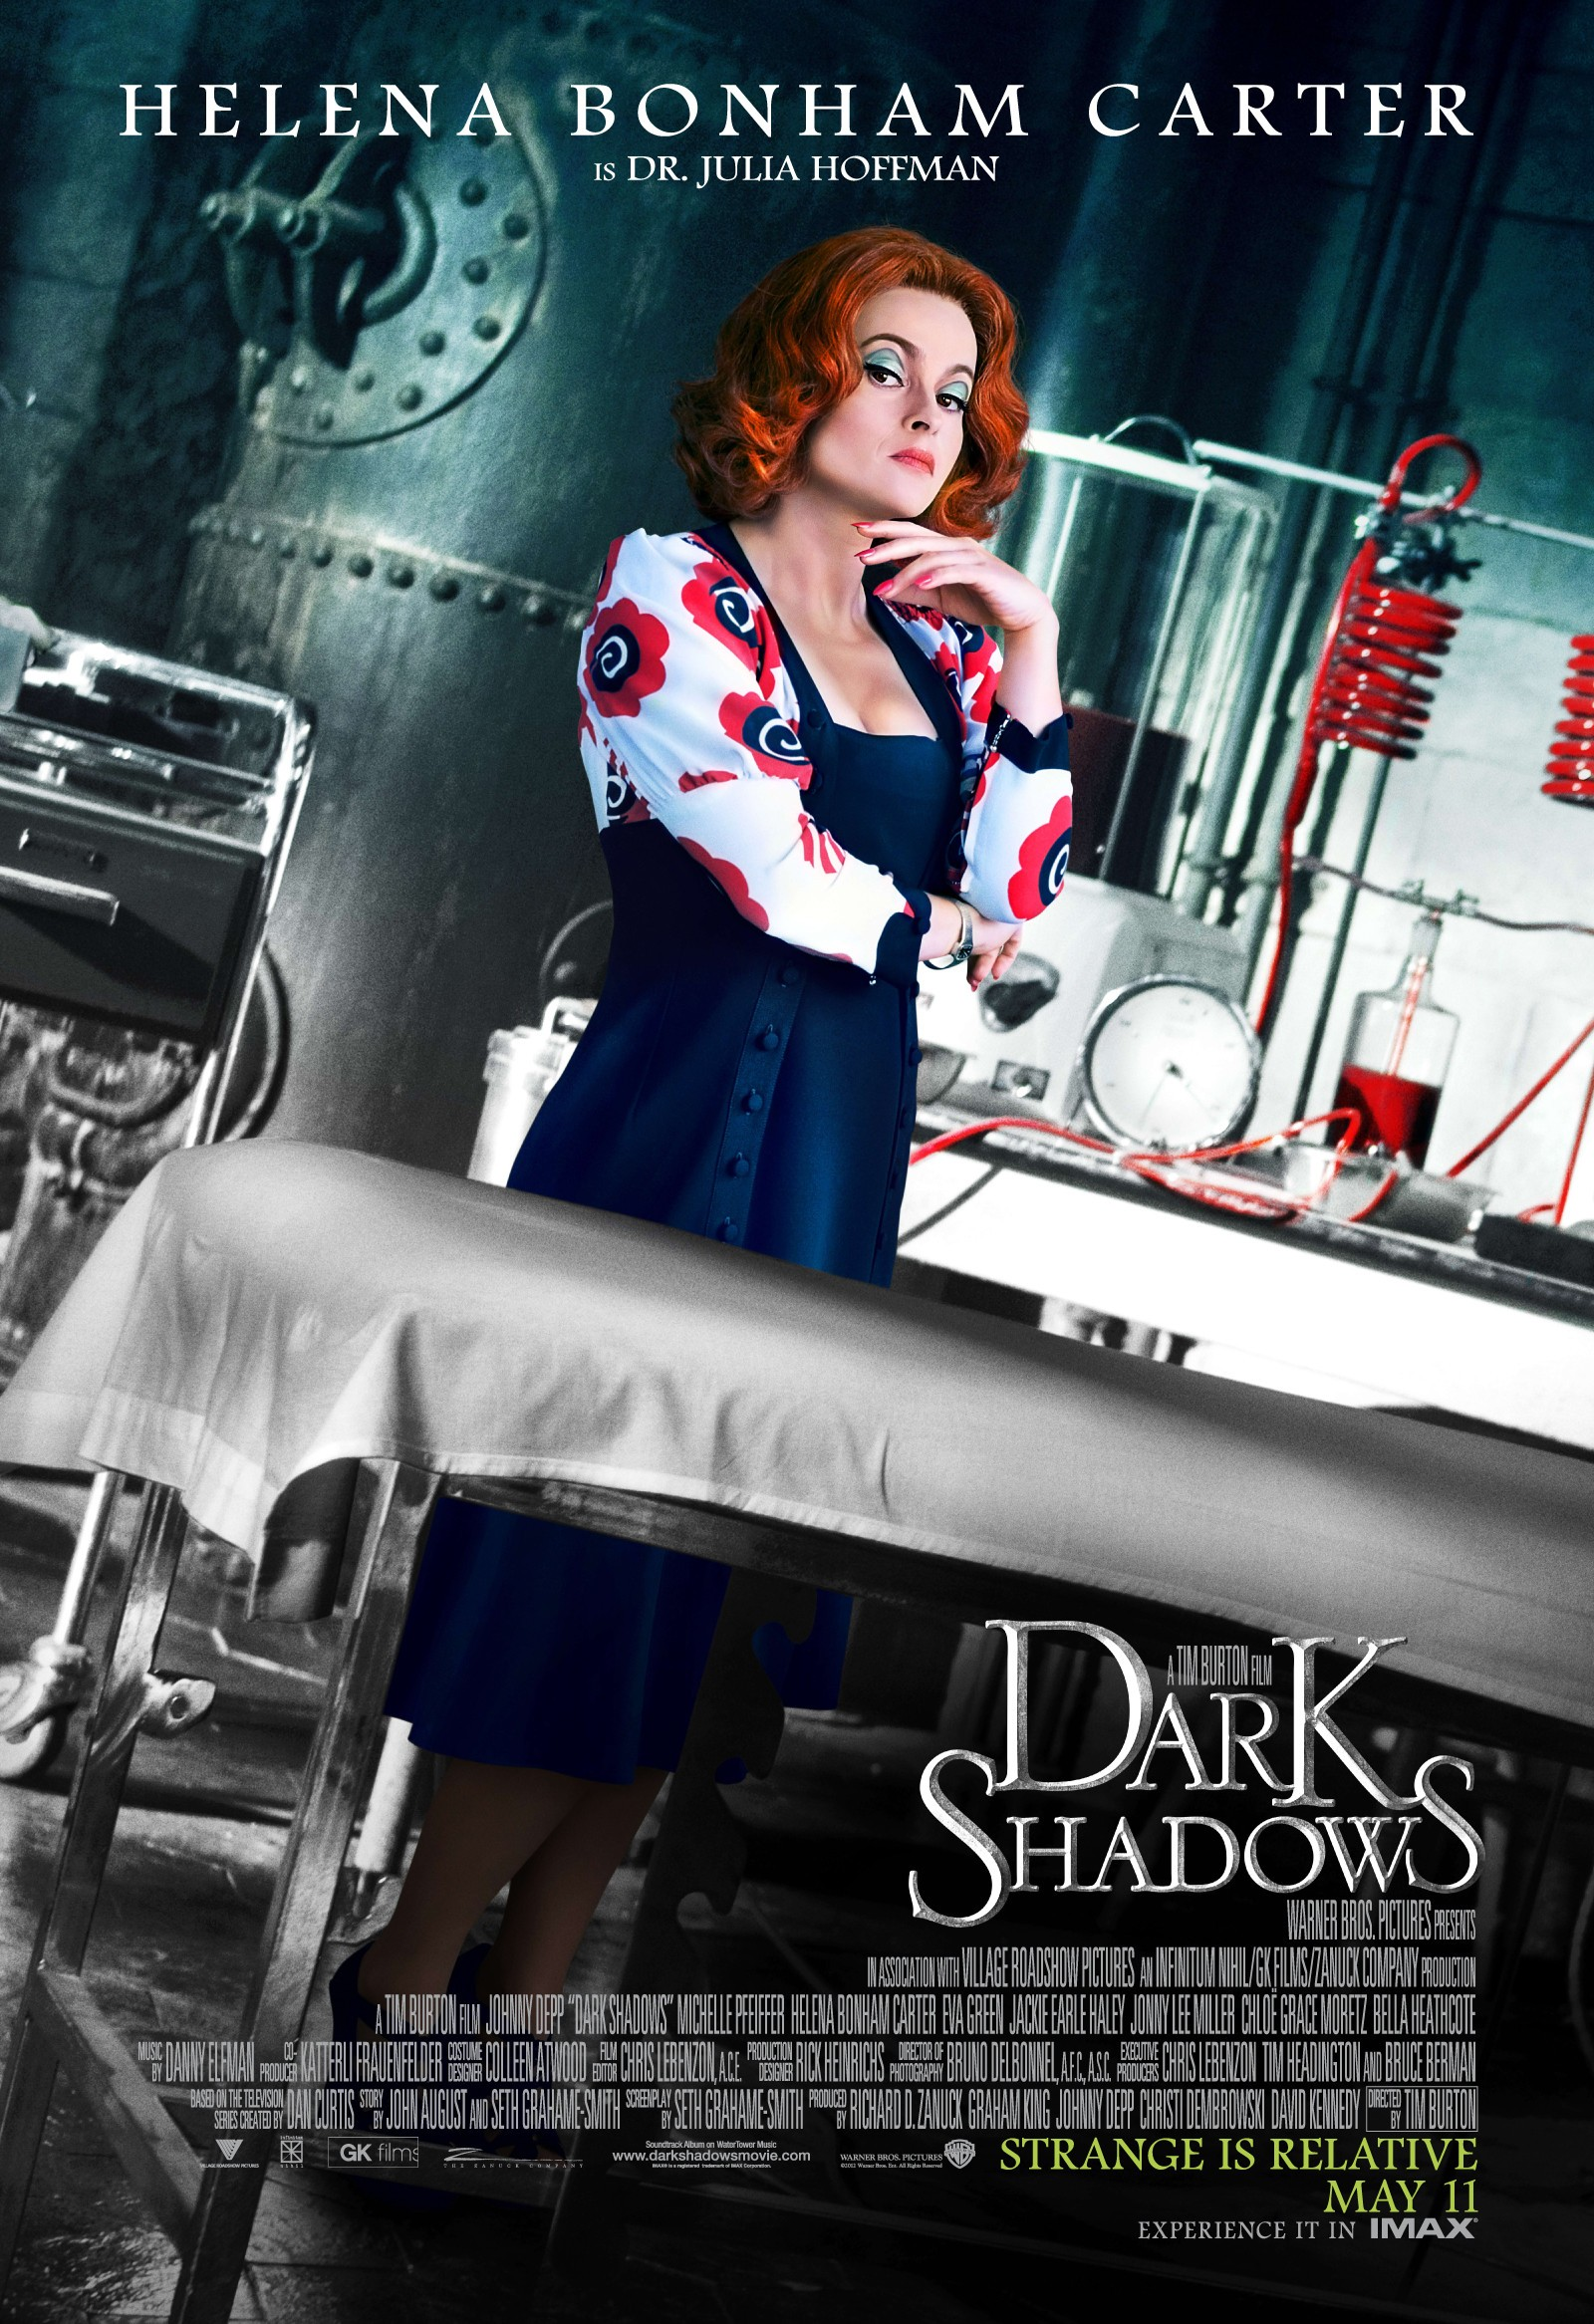 New Movie Posters: BEL AMI, DARK SHADOWS, TITANIC 3D ...